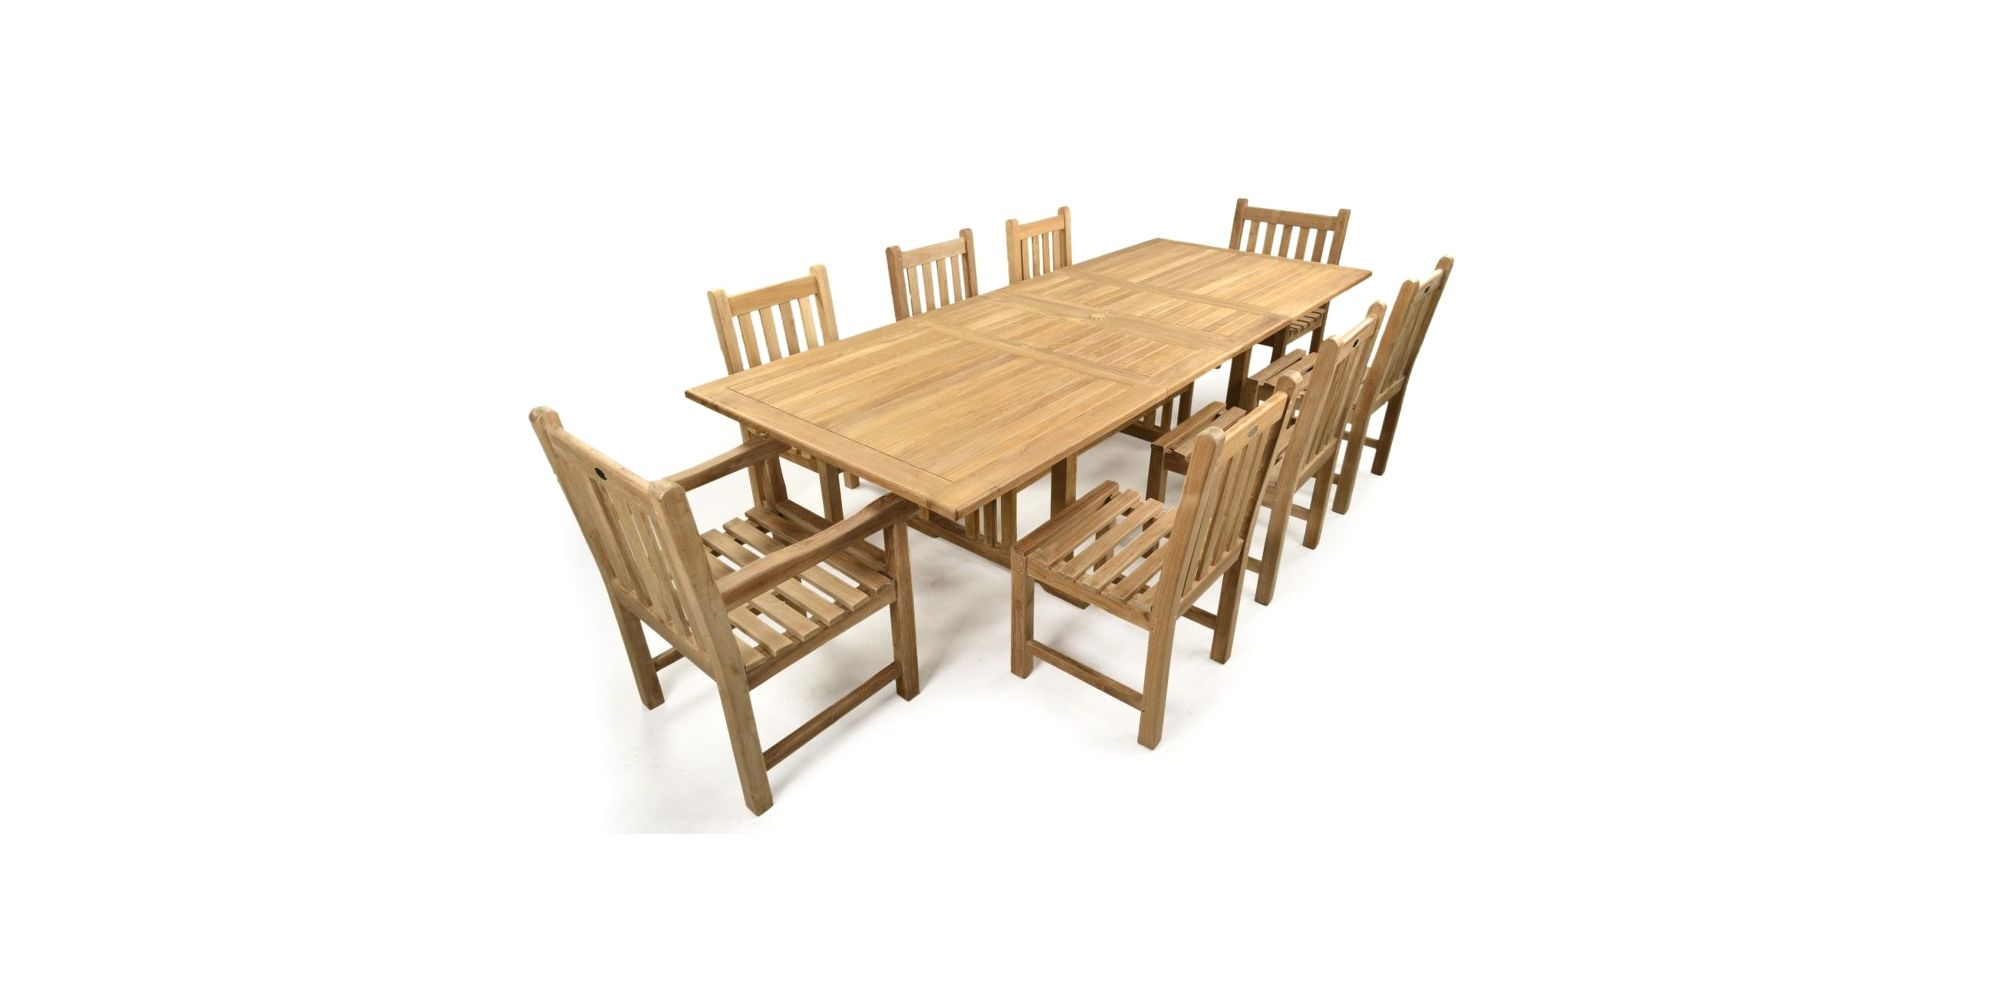 Extending Table 187 Tesco Extending Tables : 459 4567PI1000021MNwid2000amphei2000 from extendingtable.co.uk size 2000 x 2000 jpeg 94kB